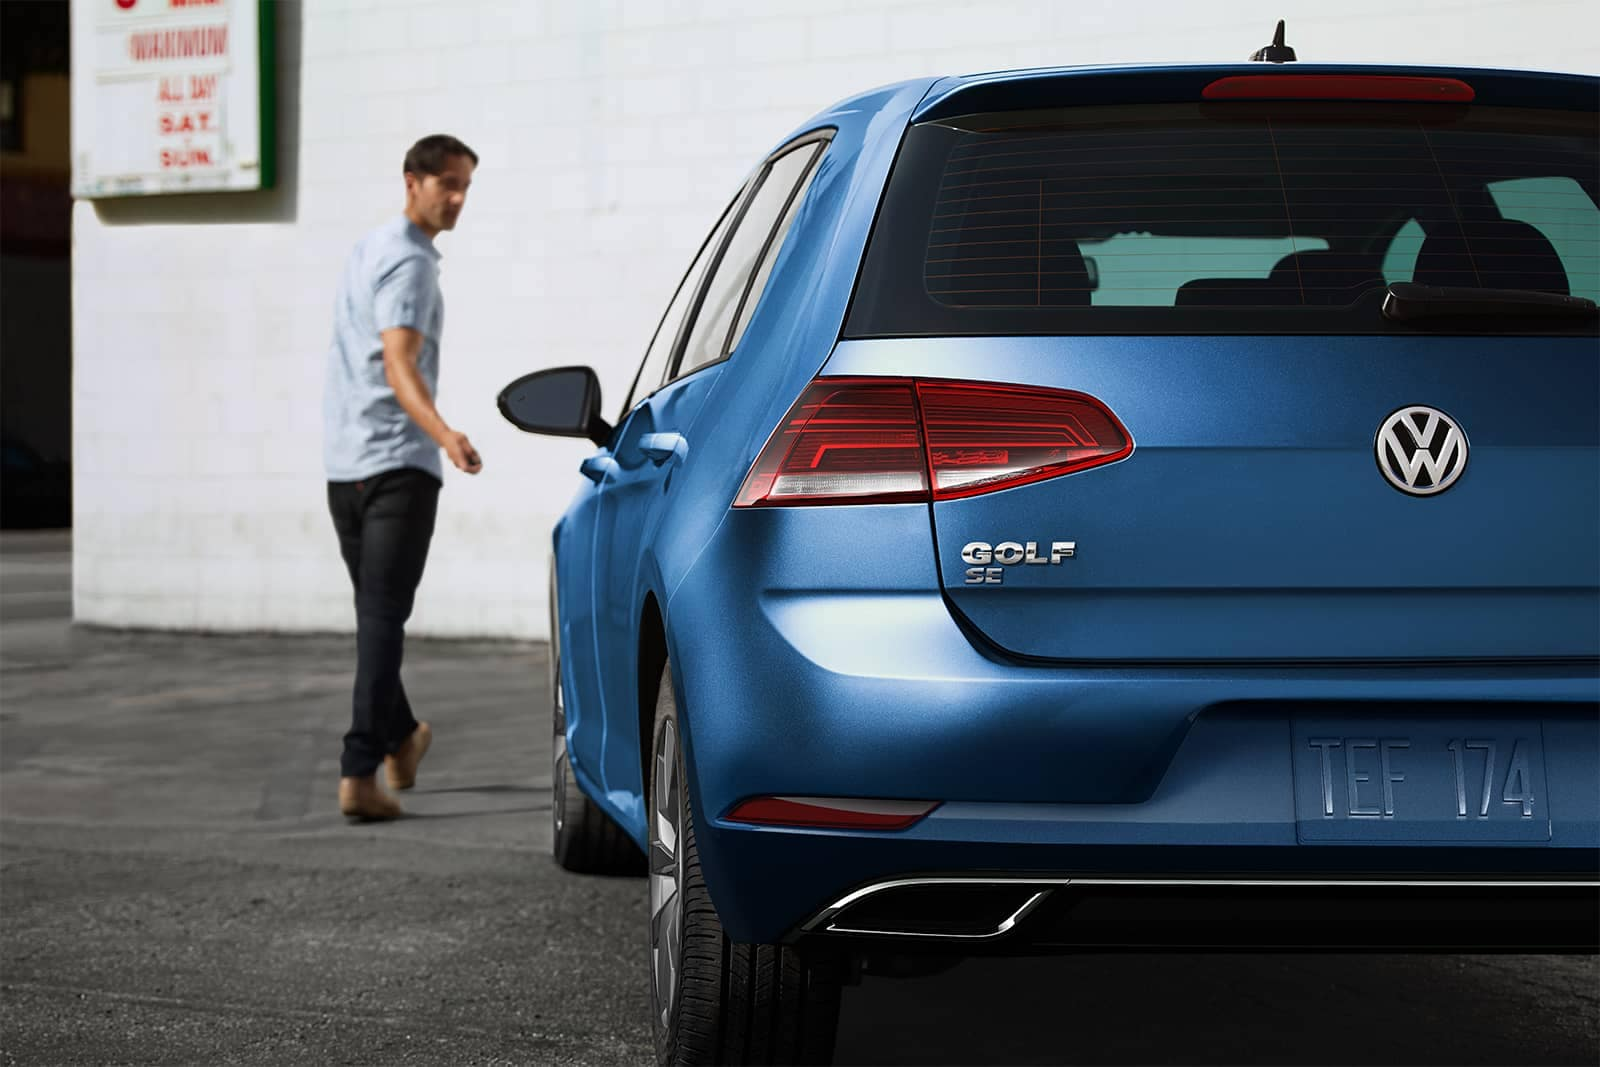 2019 Volkswagen Golf person walking away from car locking it